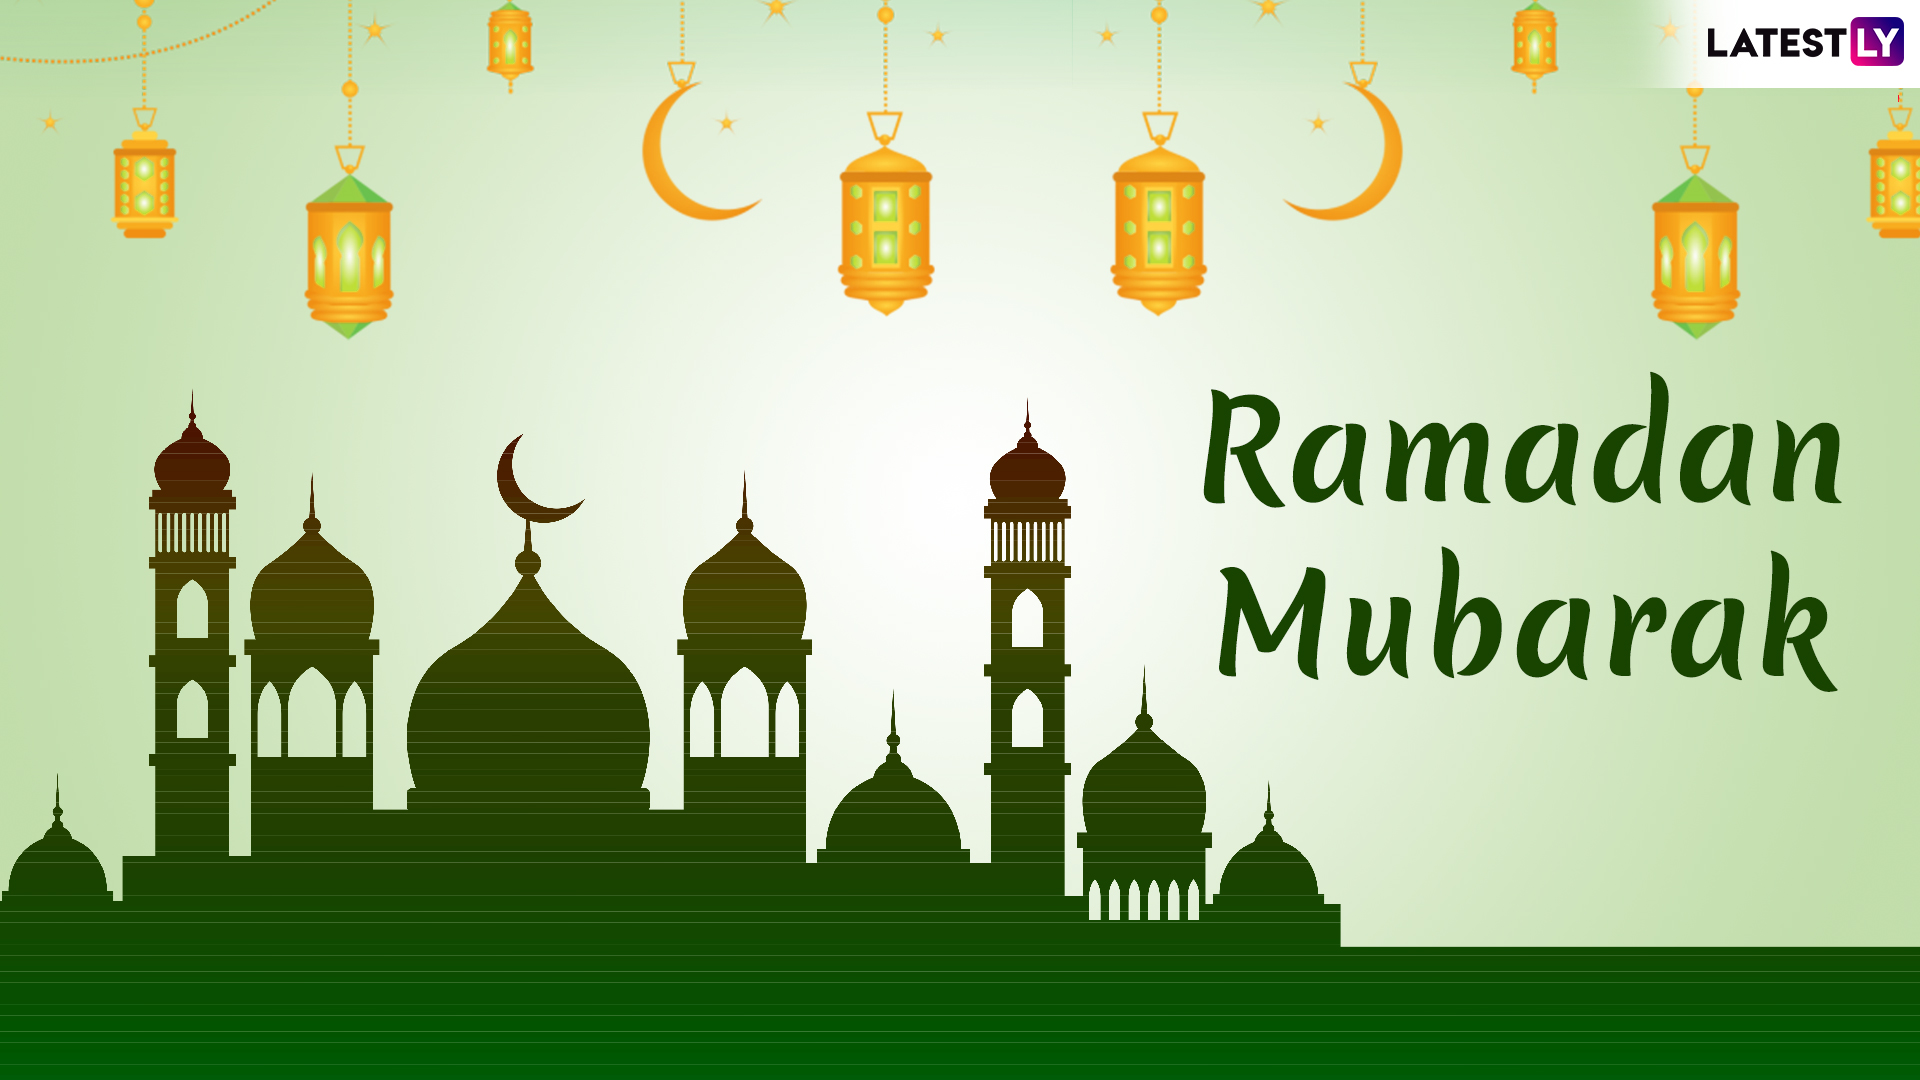 Ramadan Mubarak Images & Ramadan Kareem HD Wallpapers for Free